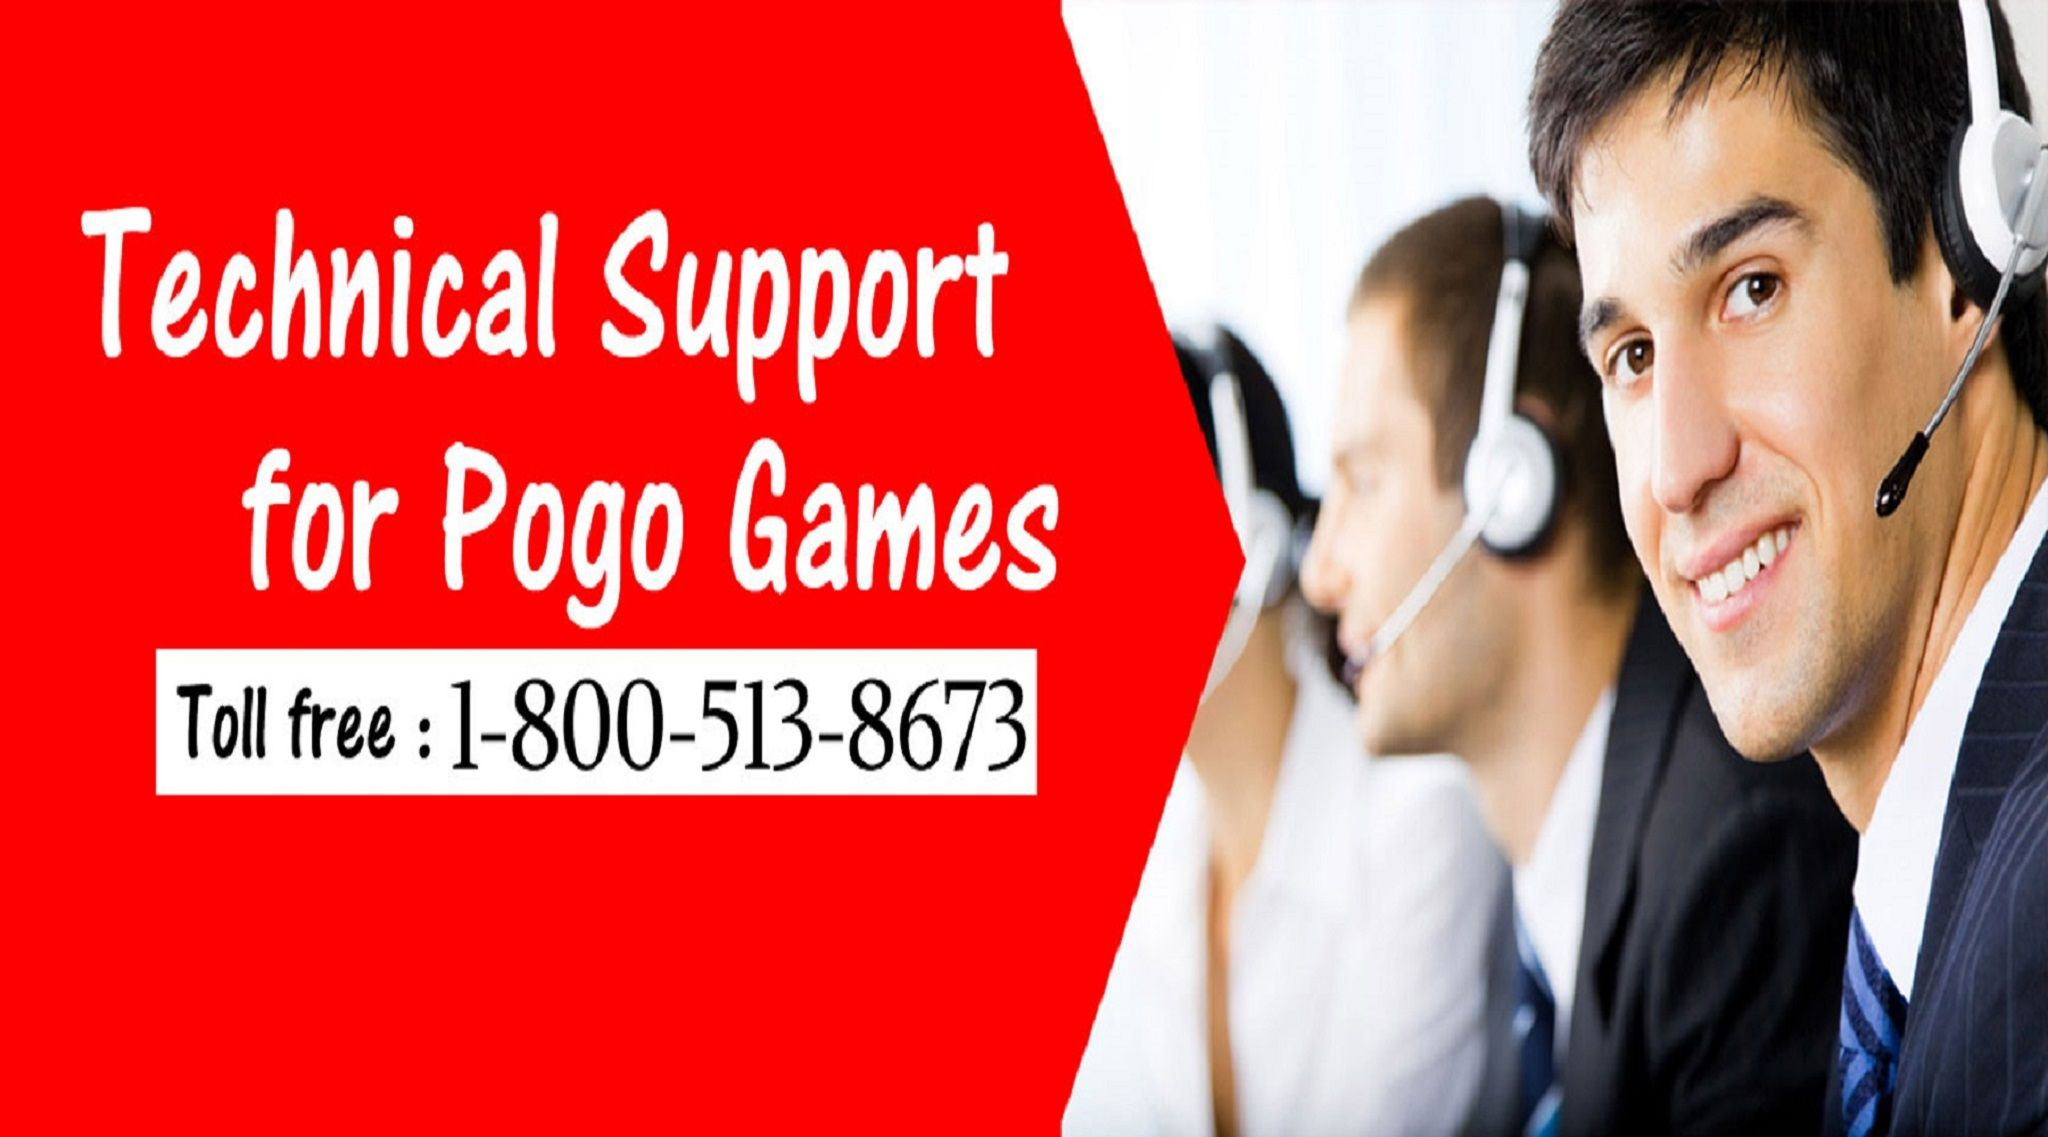 Pogo customer service phone number 1-800-513-8673 for ...